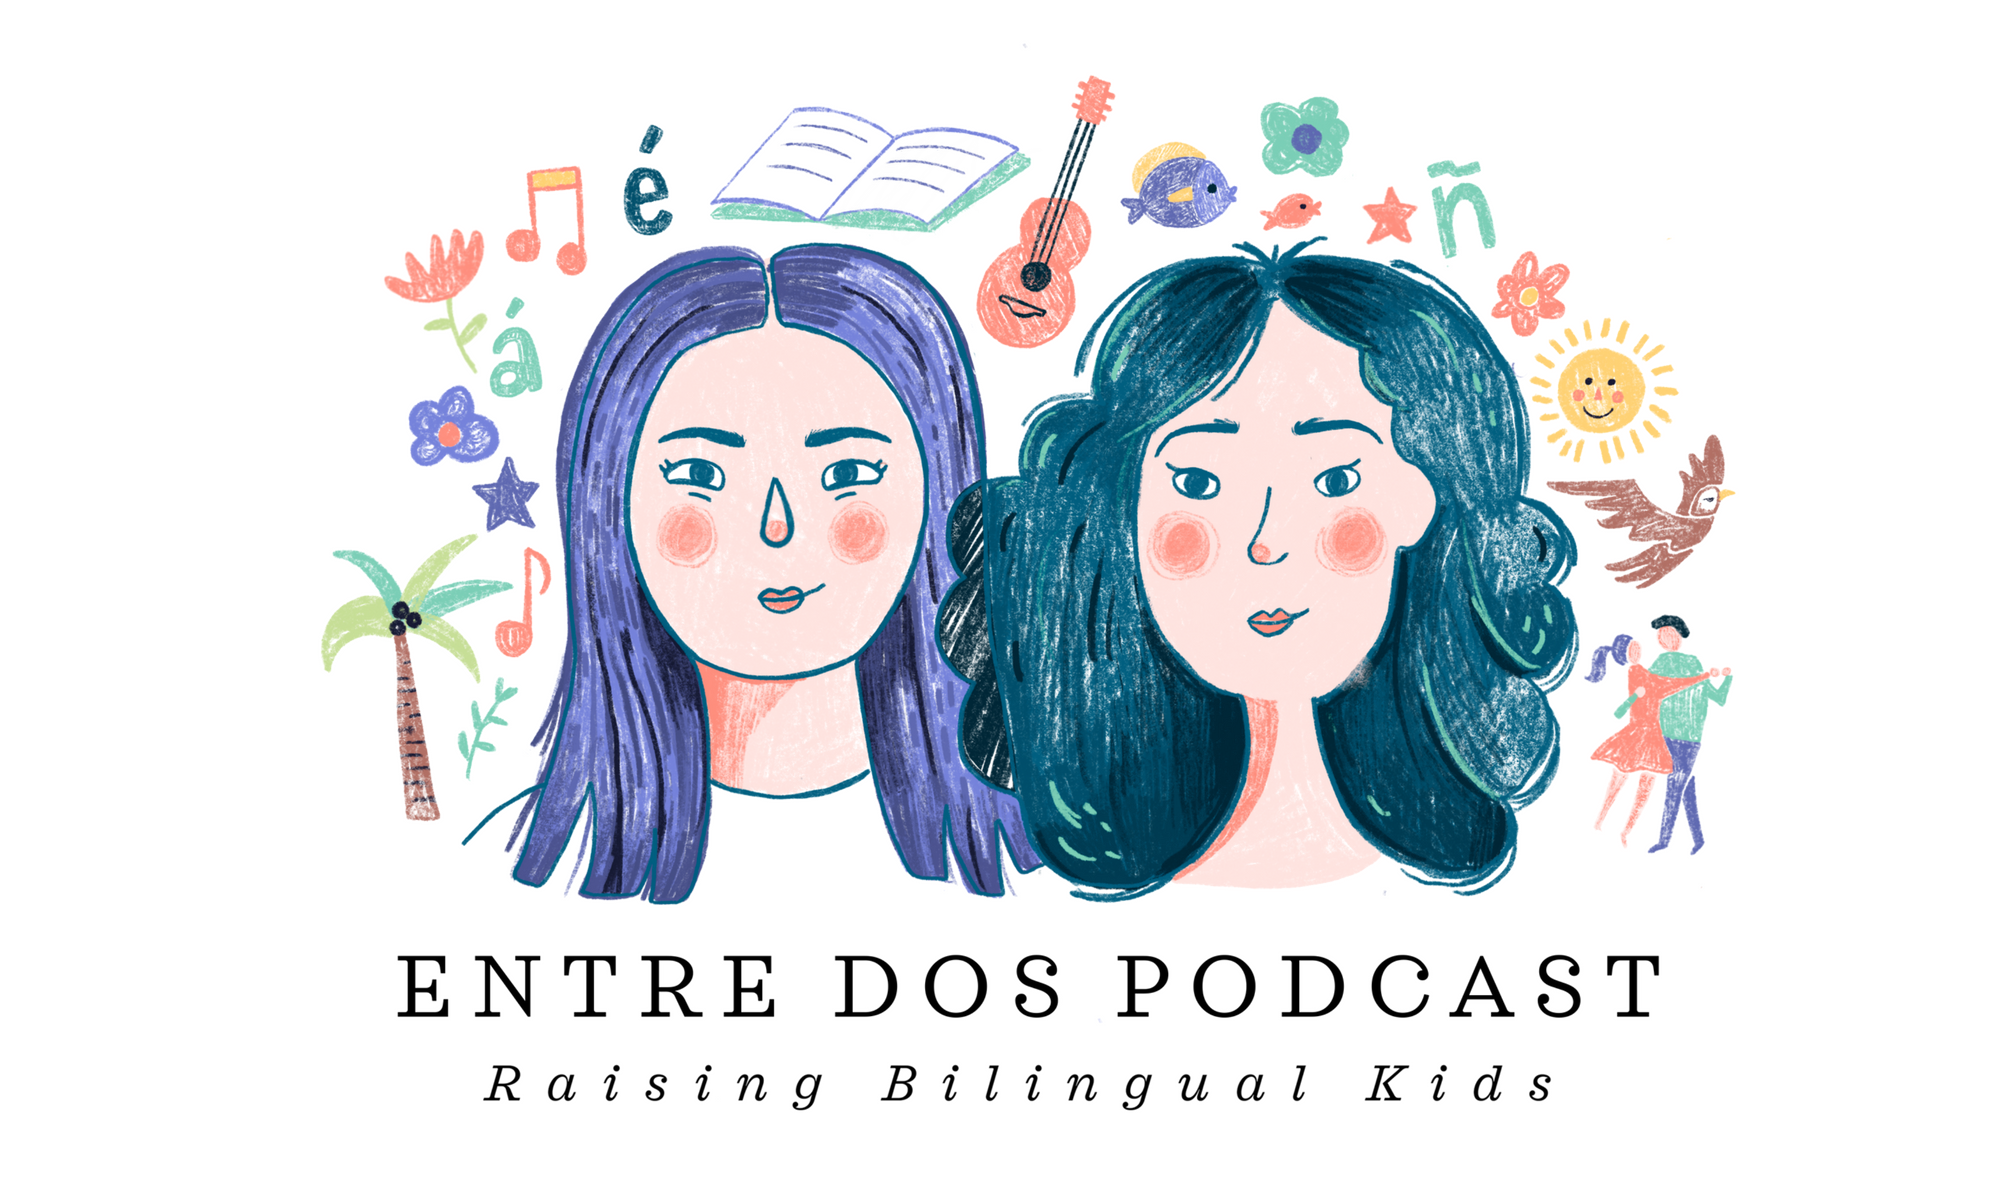 Entre Dos Podcast